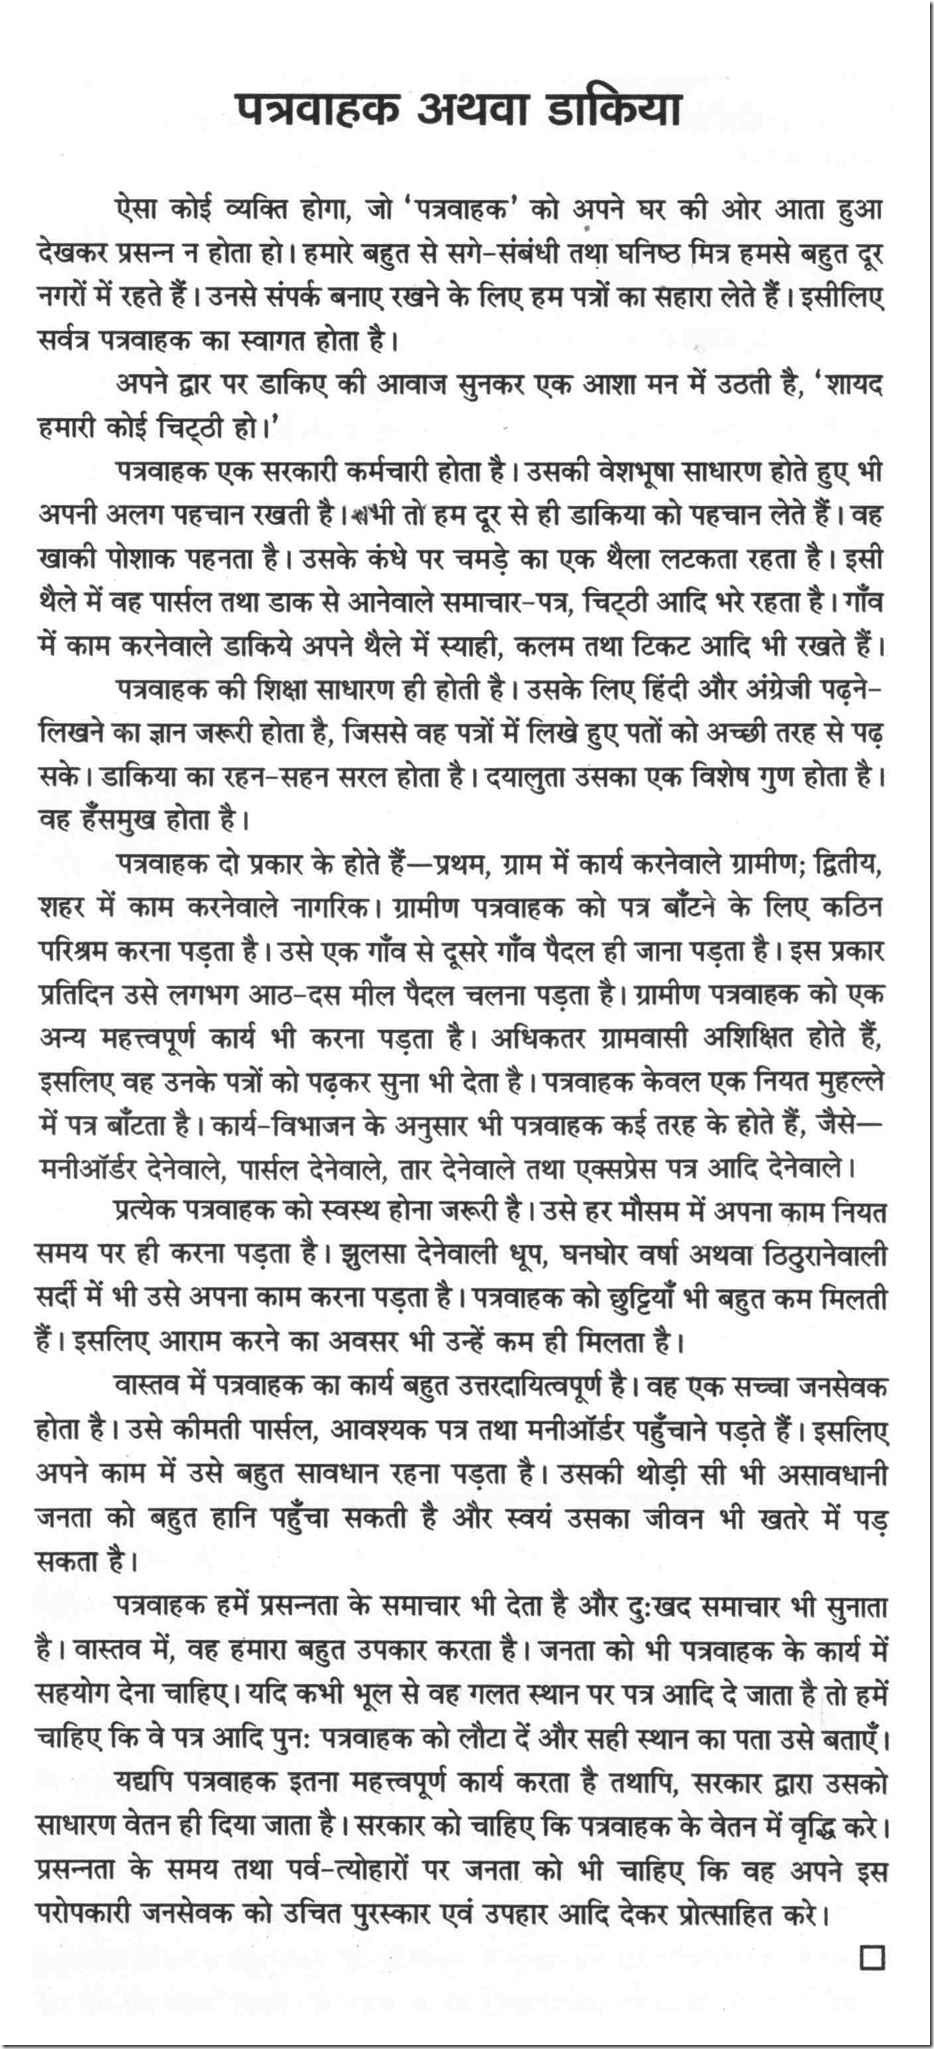 005 Hindi Literature Researchs 10024 Thumb Wonderful Research Papers Full